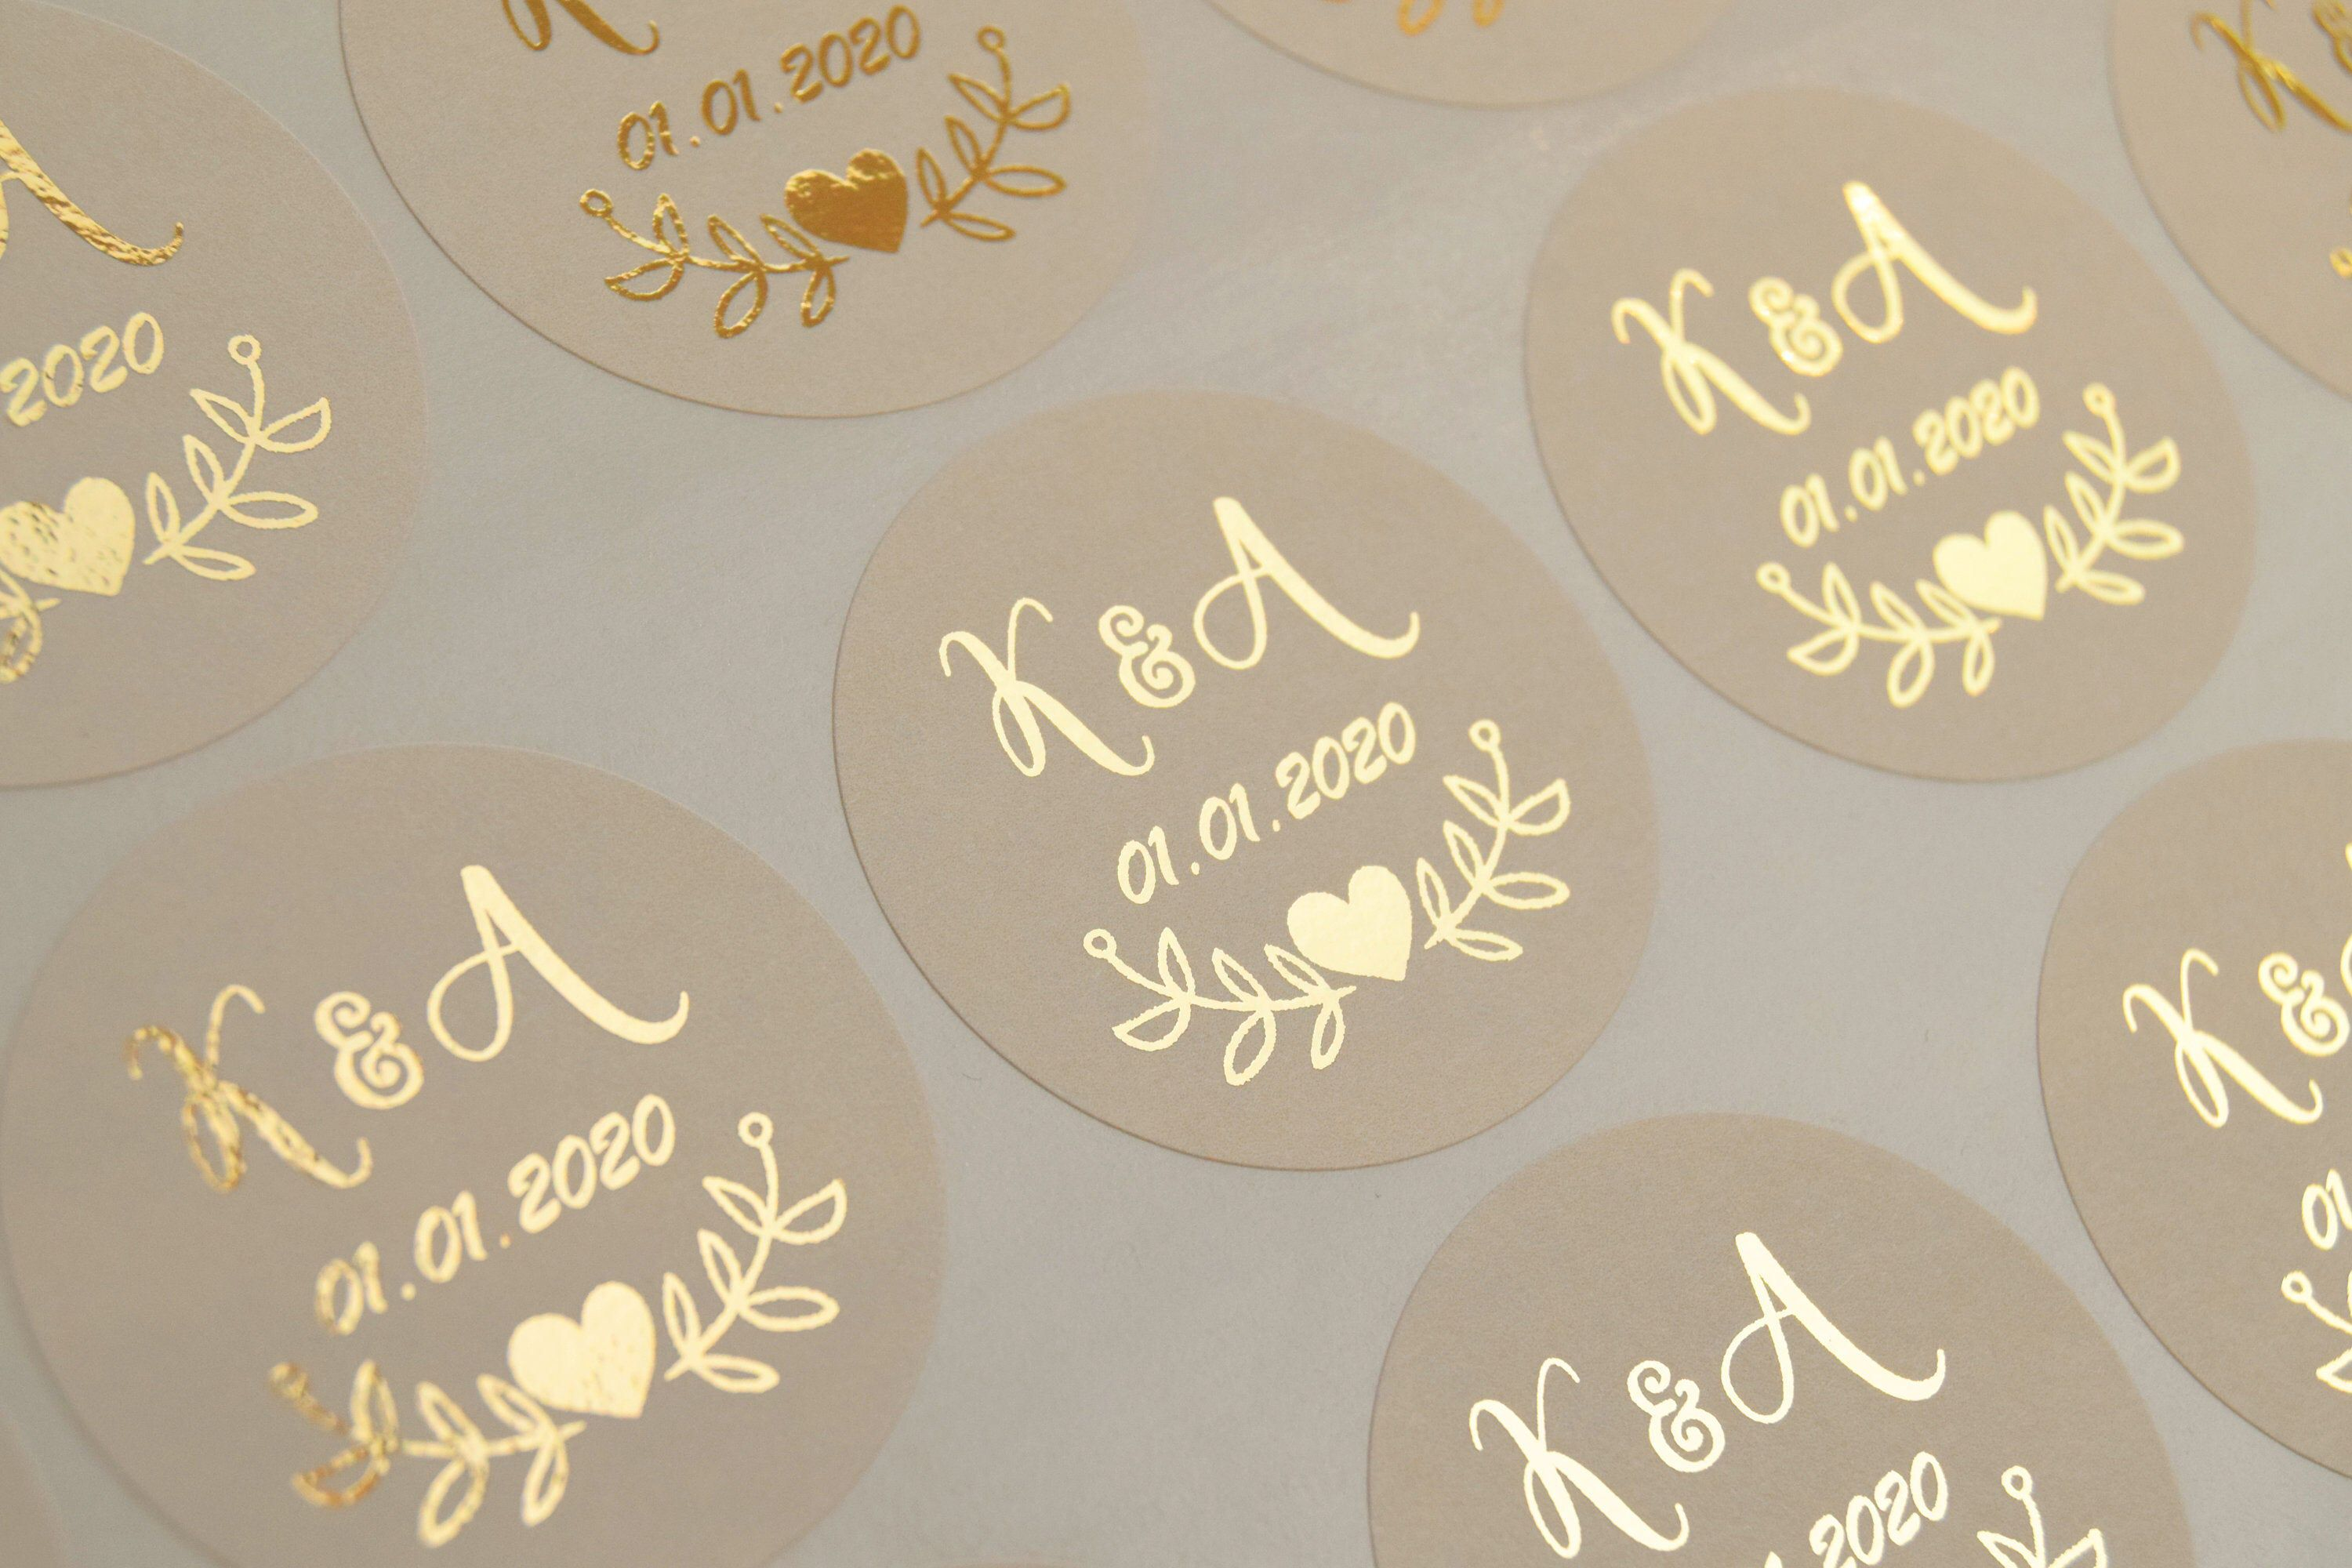 Ivory Wedding Stickers Ivory Gold Stickers Cream Favour Stickers Ivory Envelope Seals Foil Invitation Stickers Cream Favor Labels D7 Wedding Stickers Foil Invitations Wedding Favor Labels